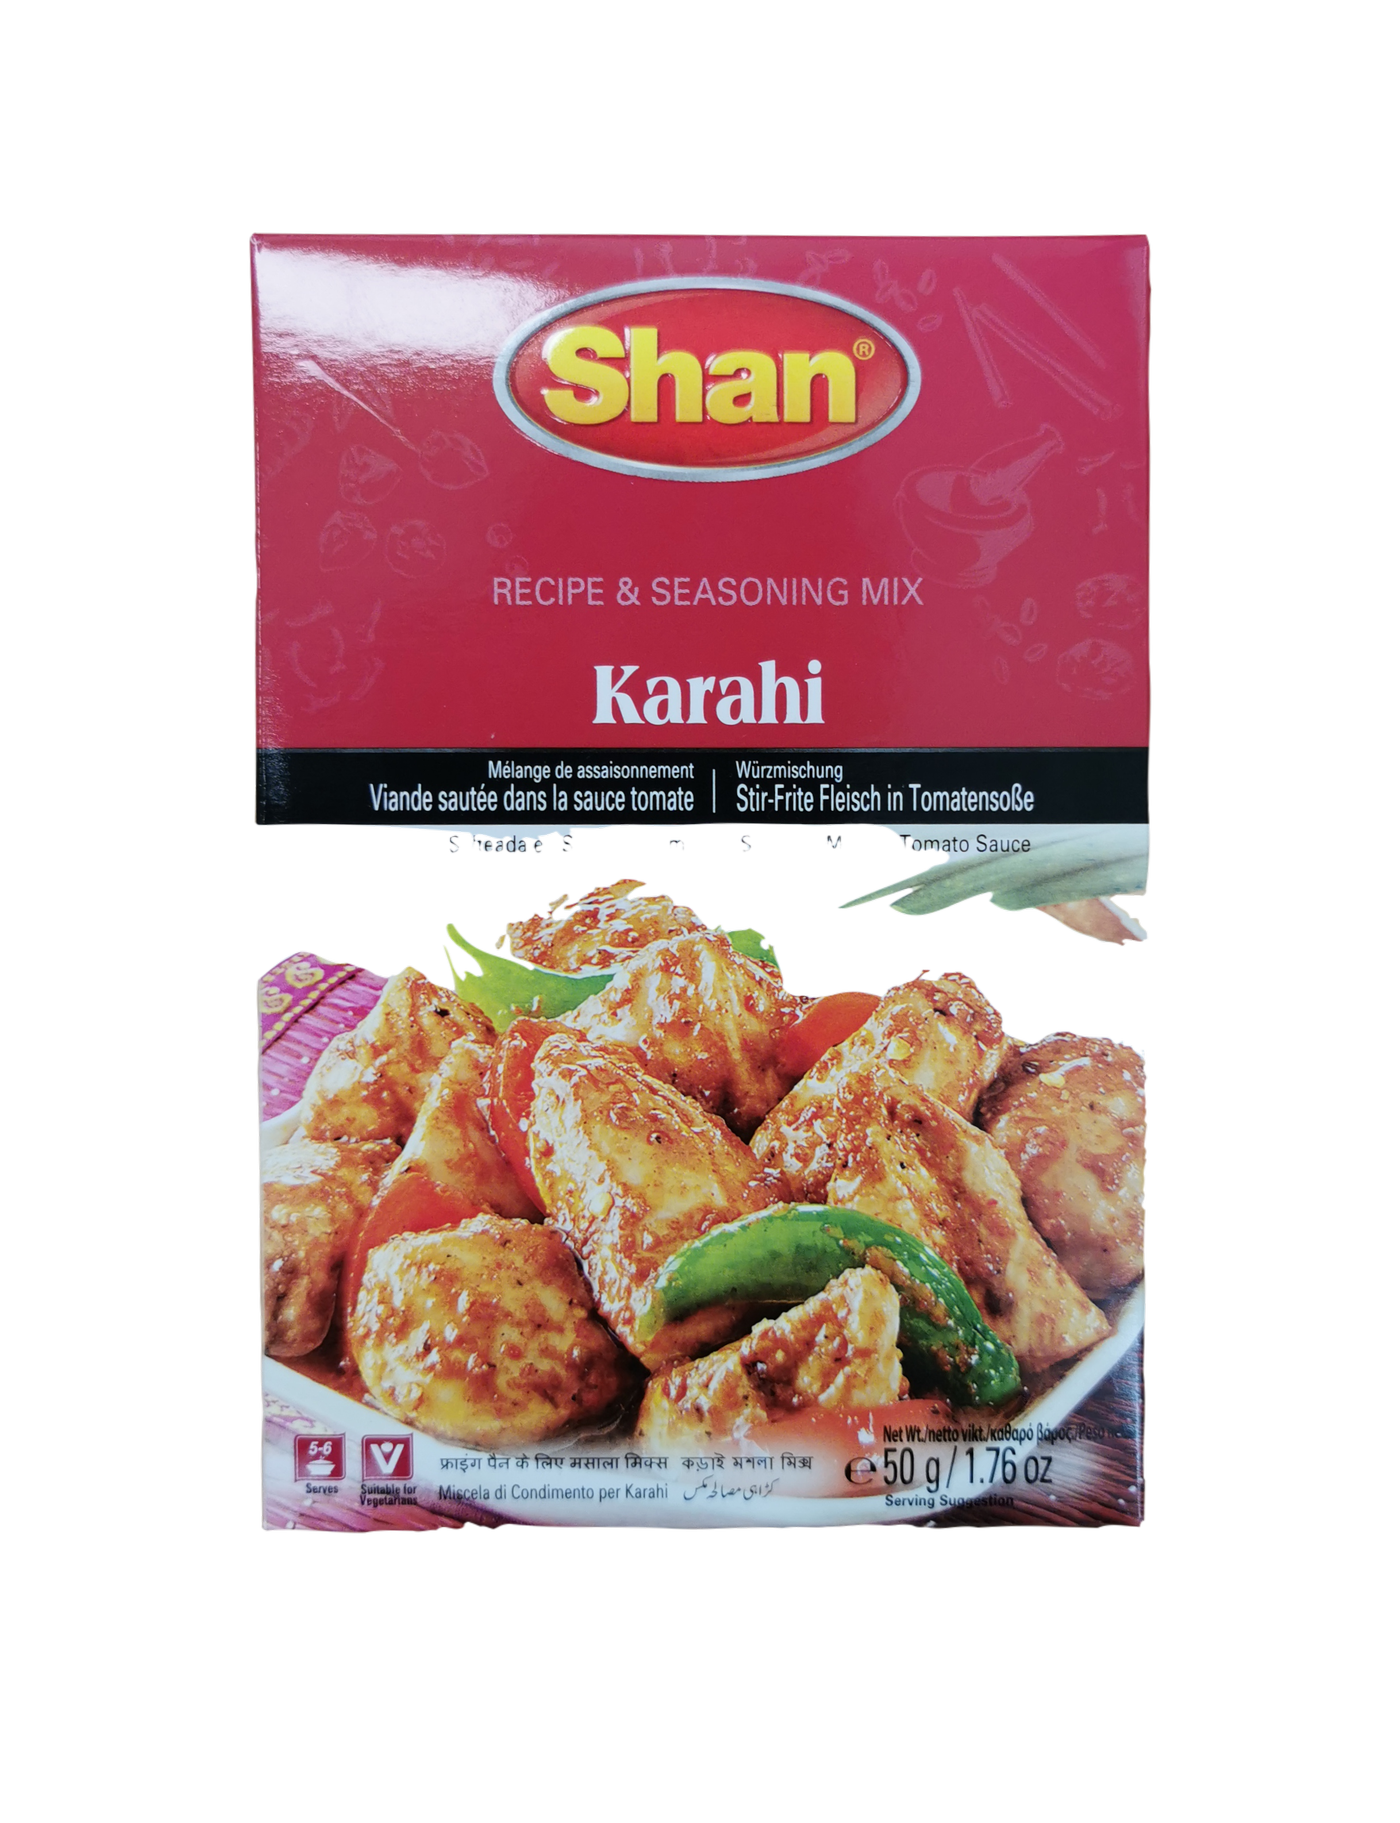 Shan Karahi Seasoning Mix